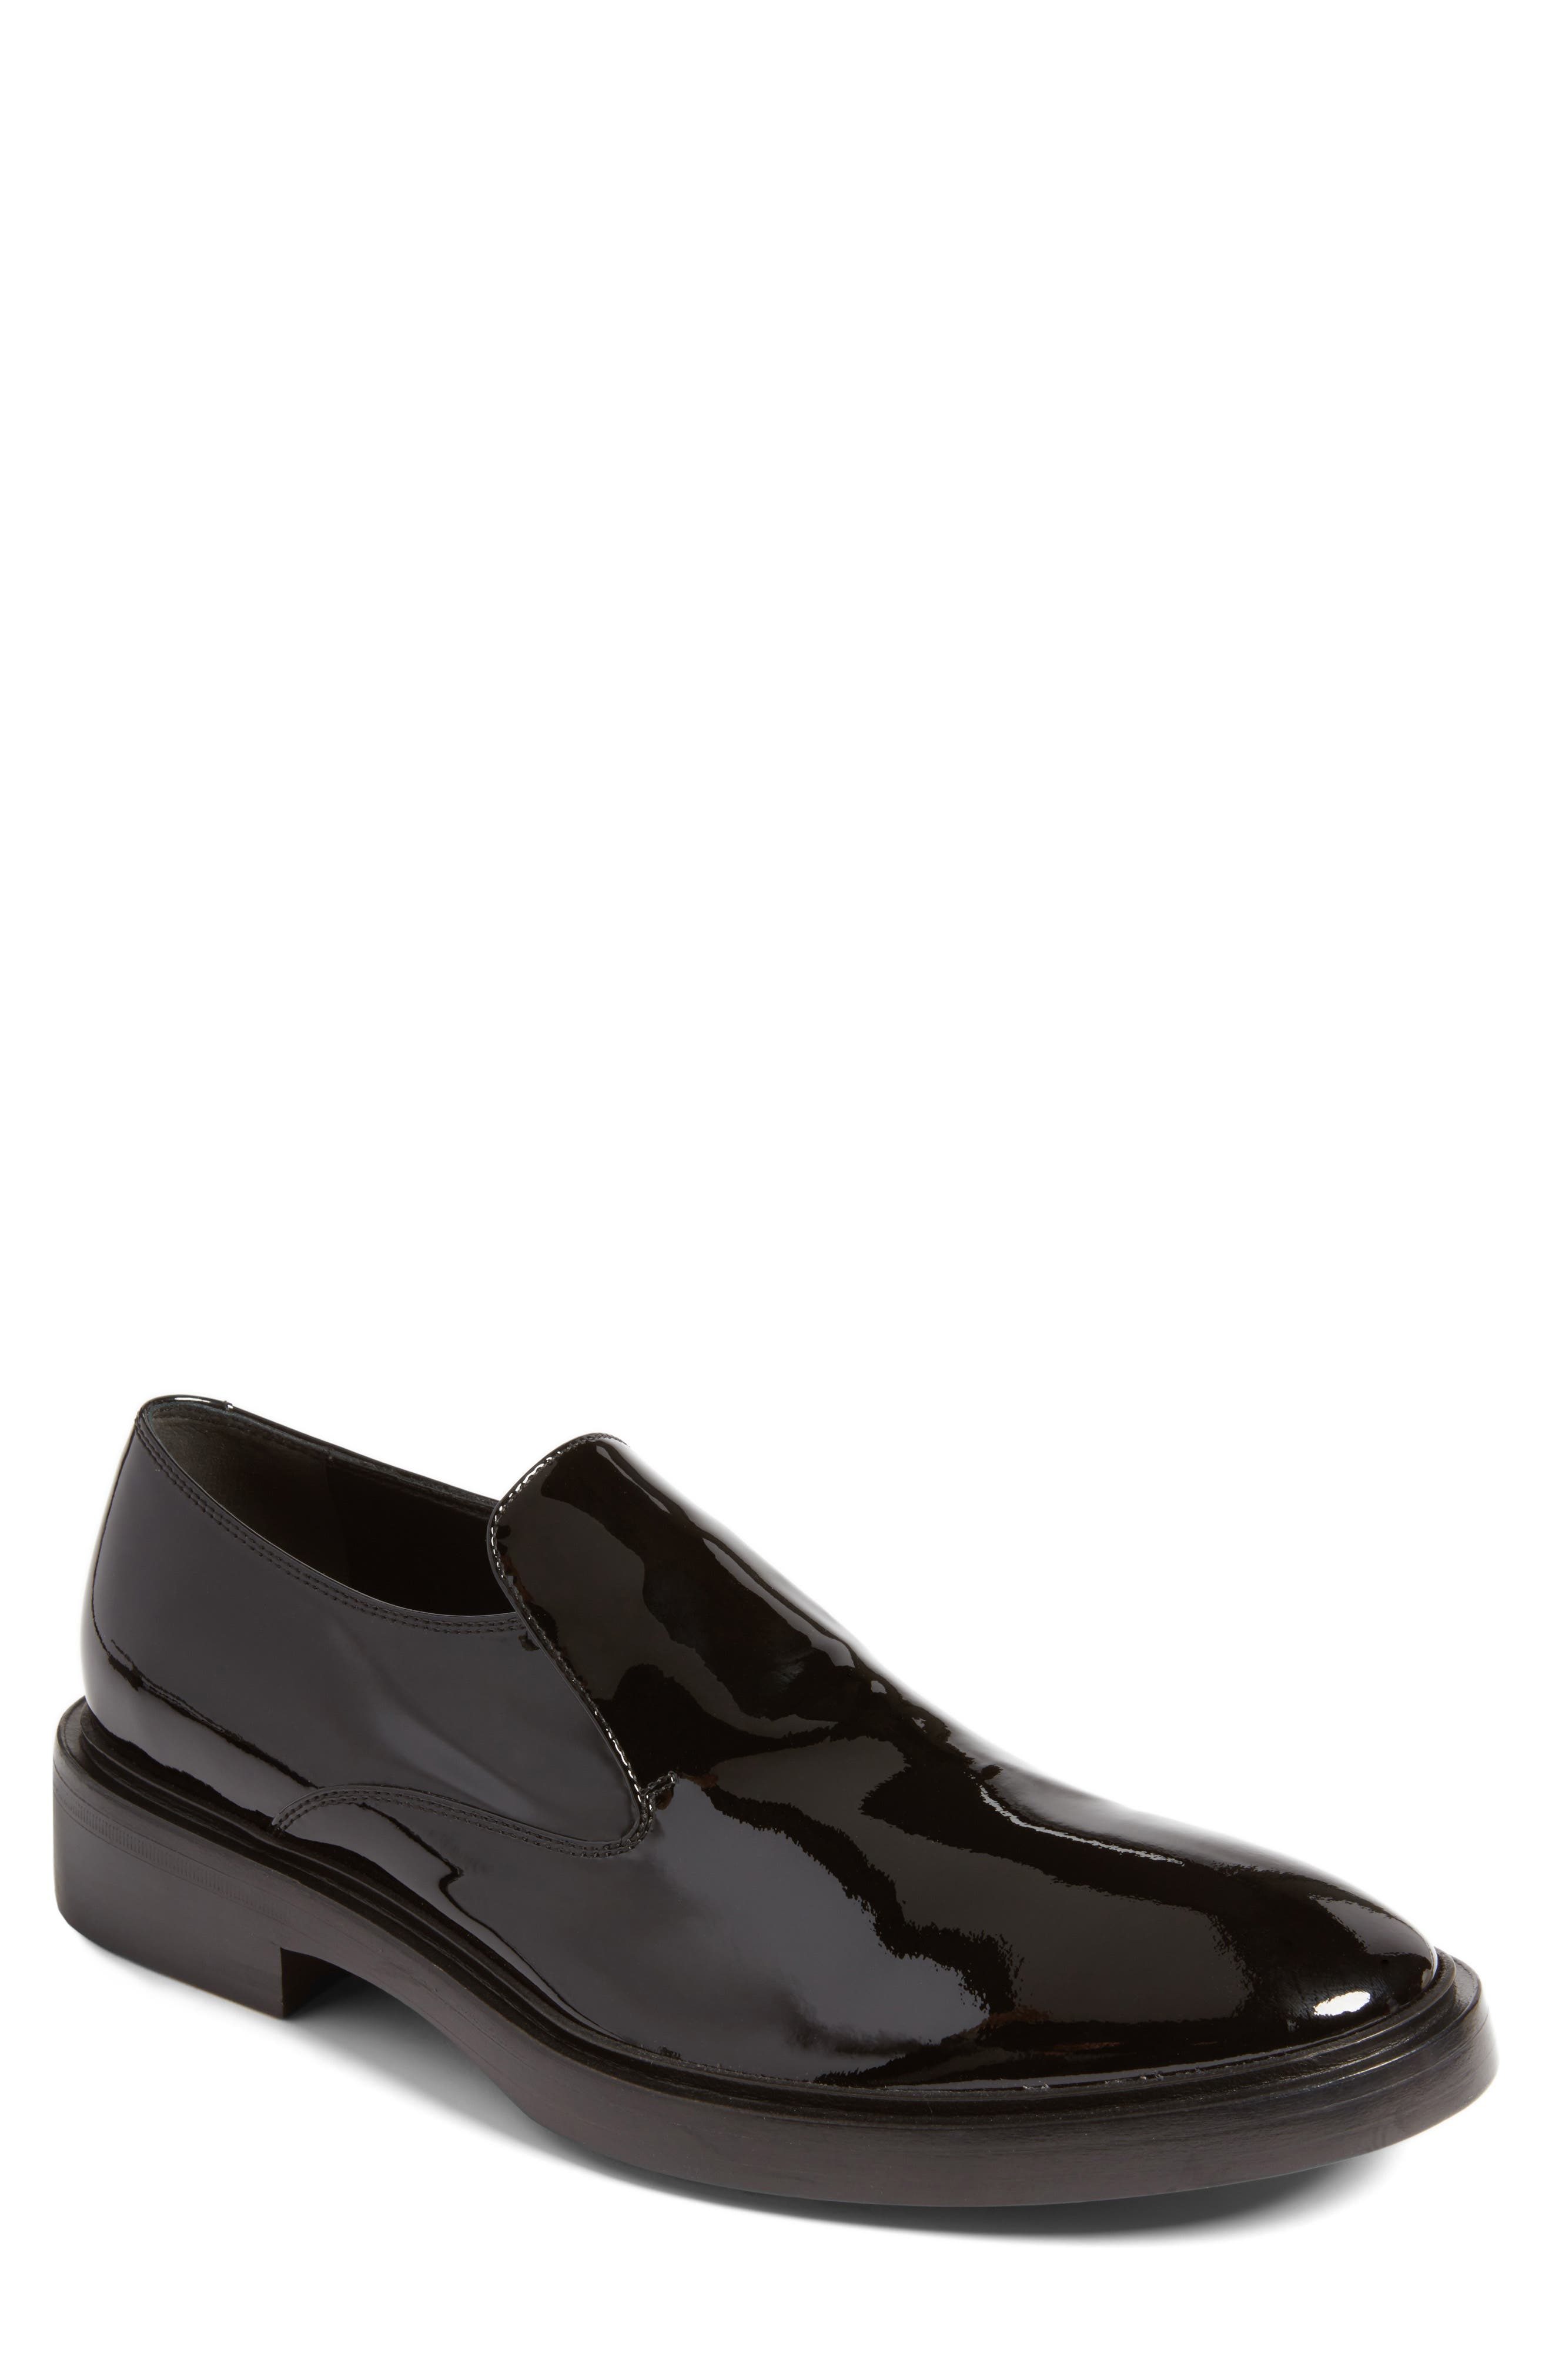 Venetian Loafer,                         Main,                         color,